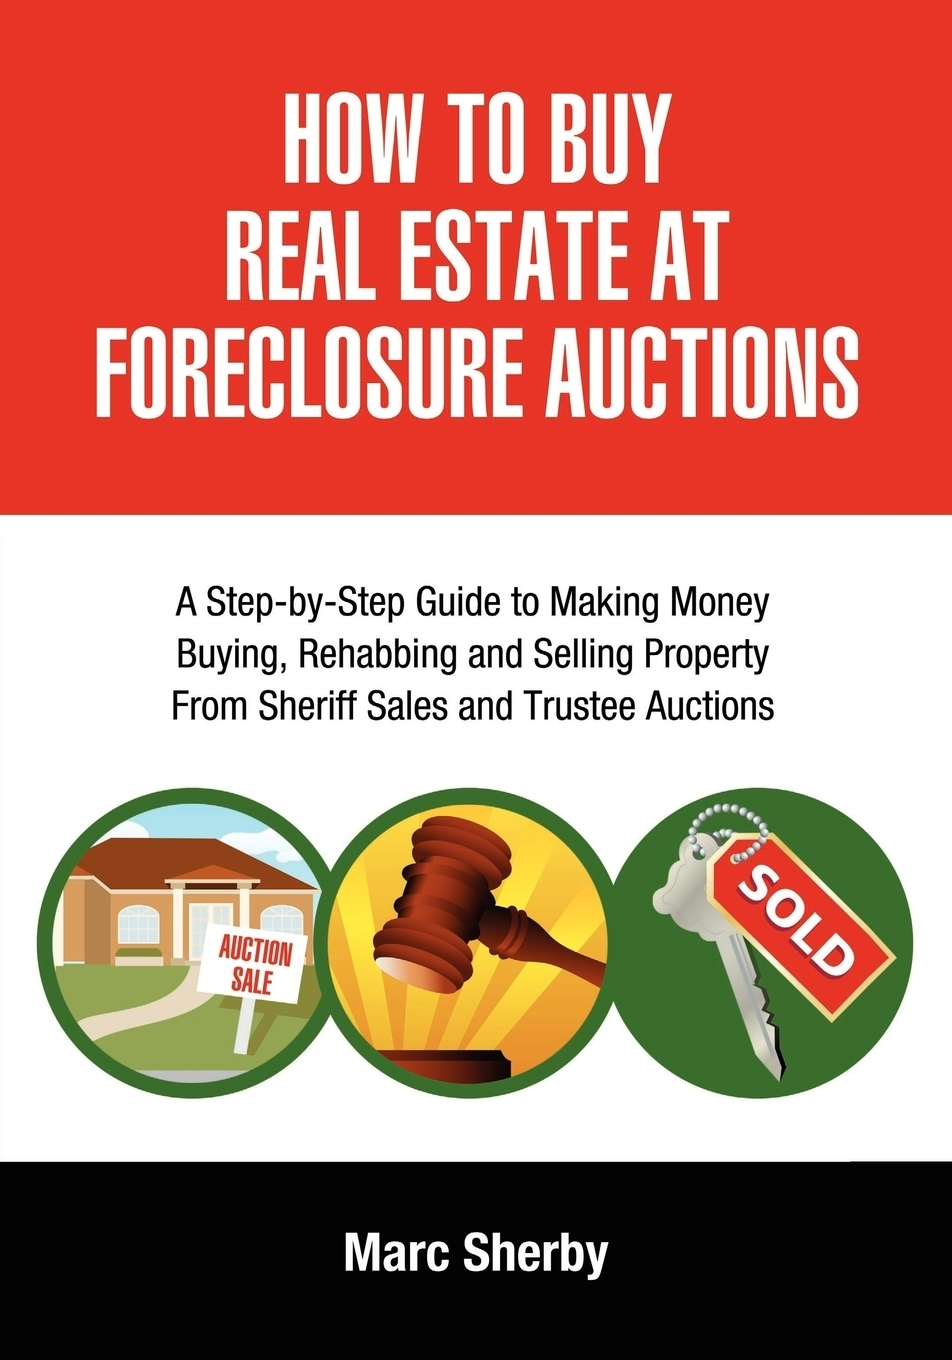 цены Marc Sherby How to Buy Real Estate at Foreclosure Auctions. A Step-By-Step Guide to Making Money Buying, Rehabbing and Selling Property from Sheriff Sales and Tru